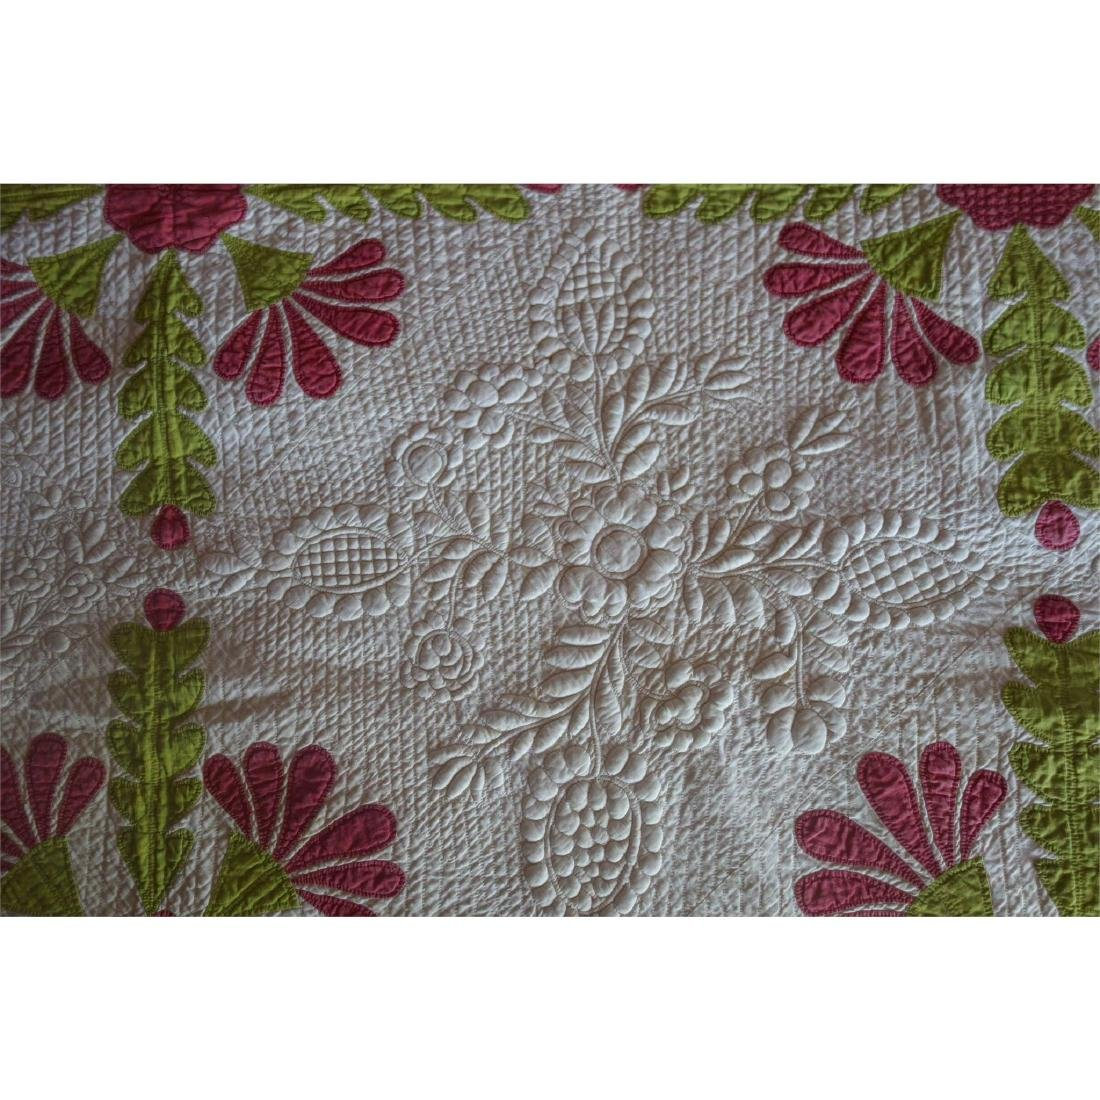 Trapunto Applique Quilt Exquisite Initialed 1800's - 4